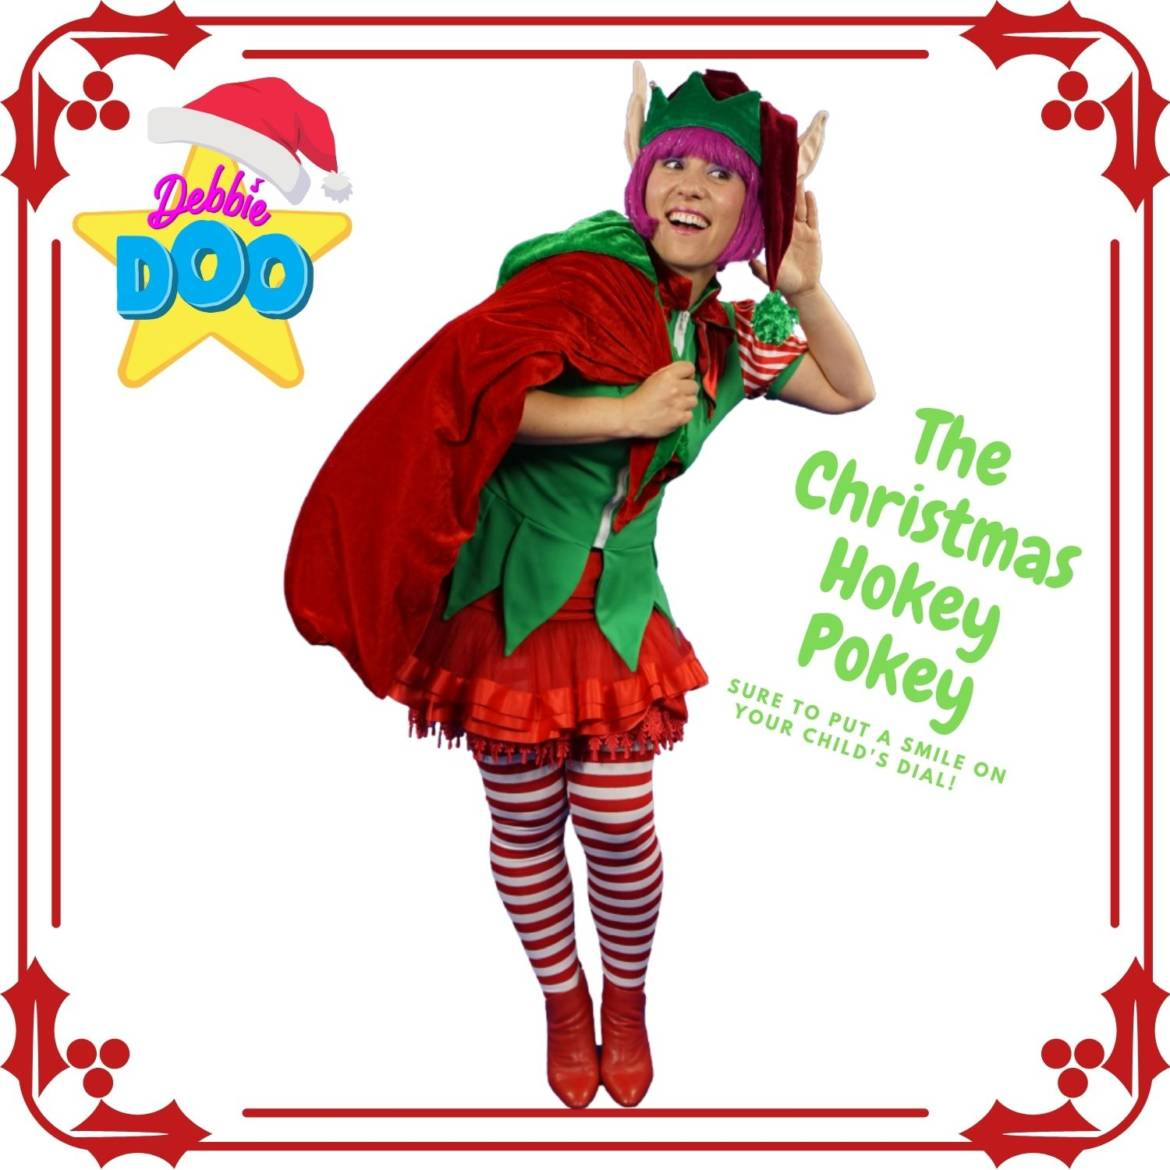 The Christmas Hokey Pokey a Feel Good Musical Activity For Kids and Grown Ups too! Debbie Doo🎄